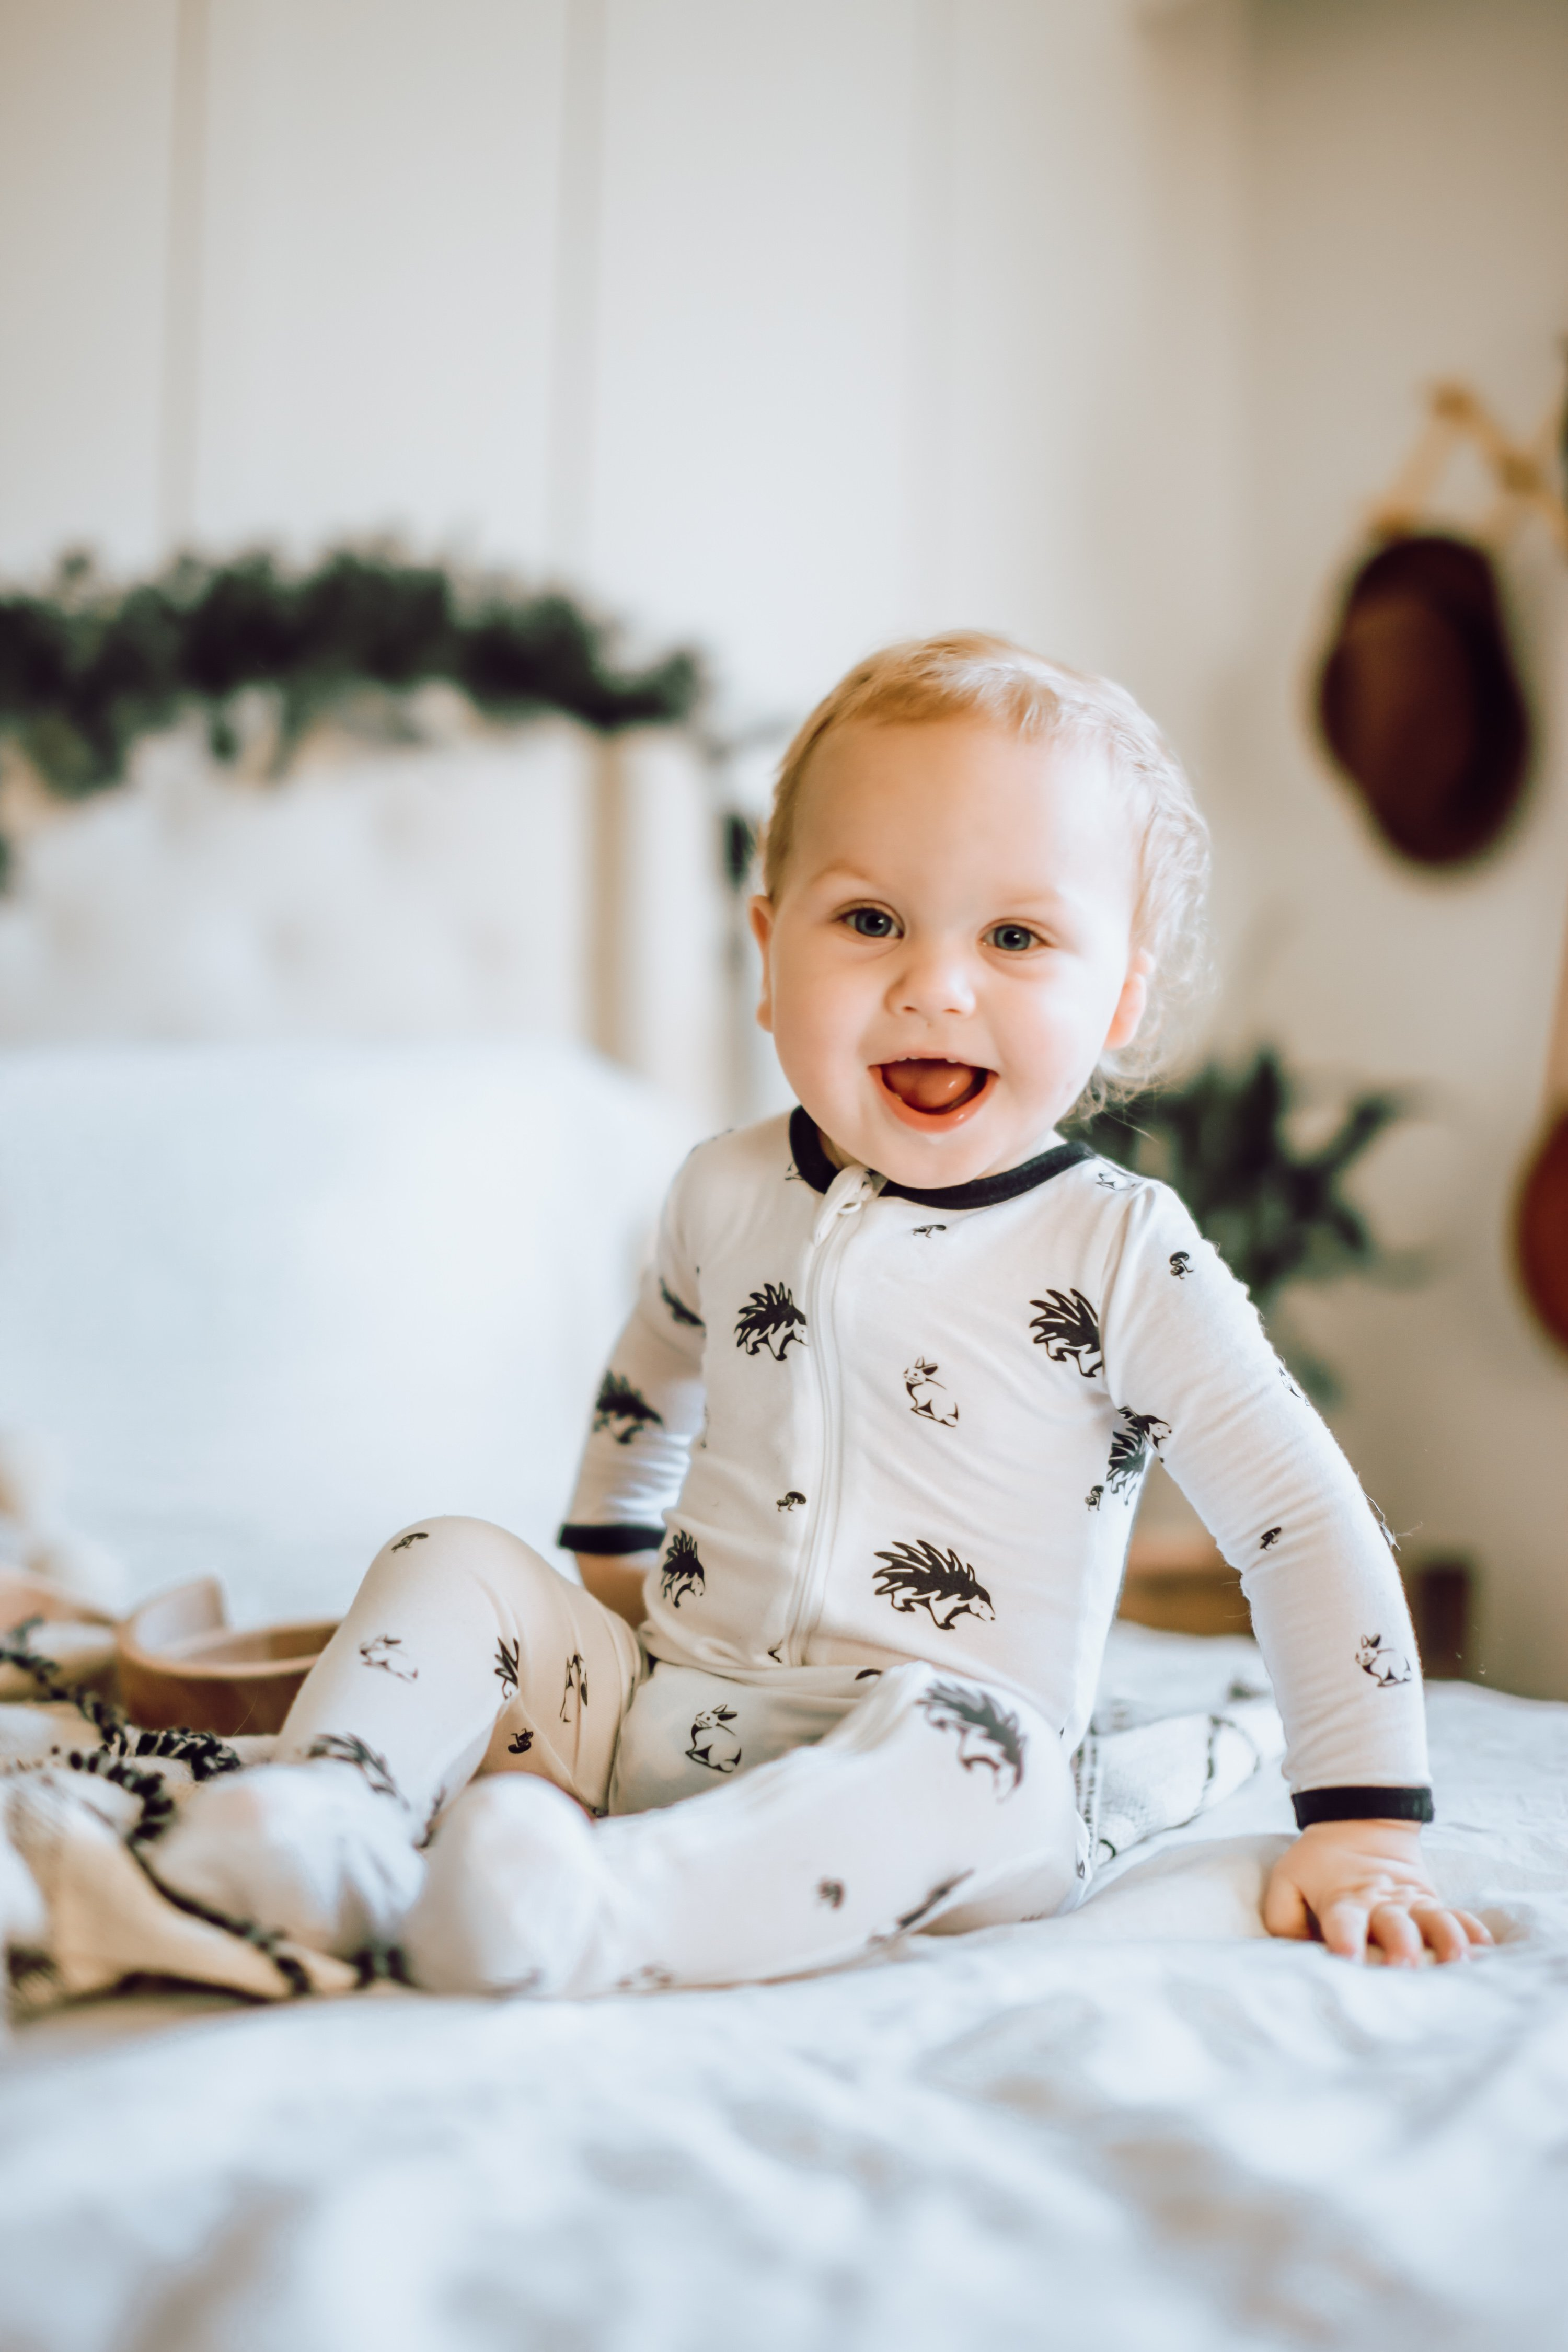 The Sweetest Bamboo Sleepwear for kids and babies. Kyte Baby is one of my favourite brands ever. Click to read our traumatic story on why we love them so much!